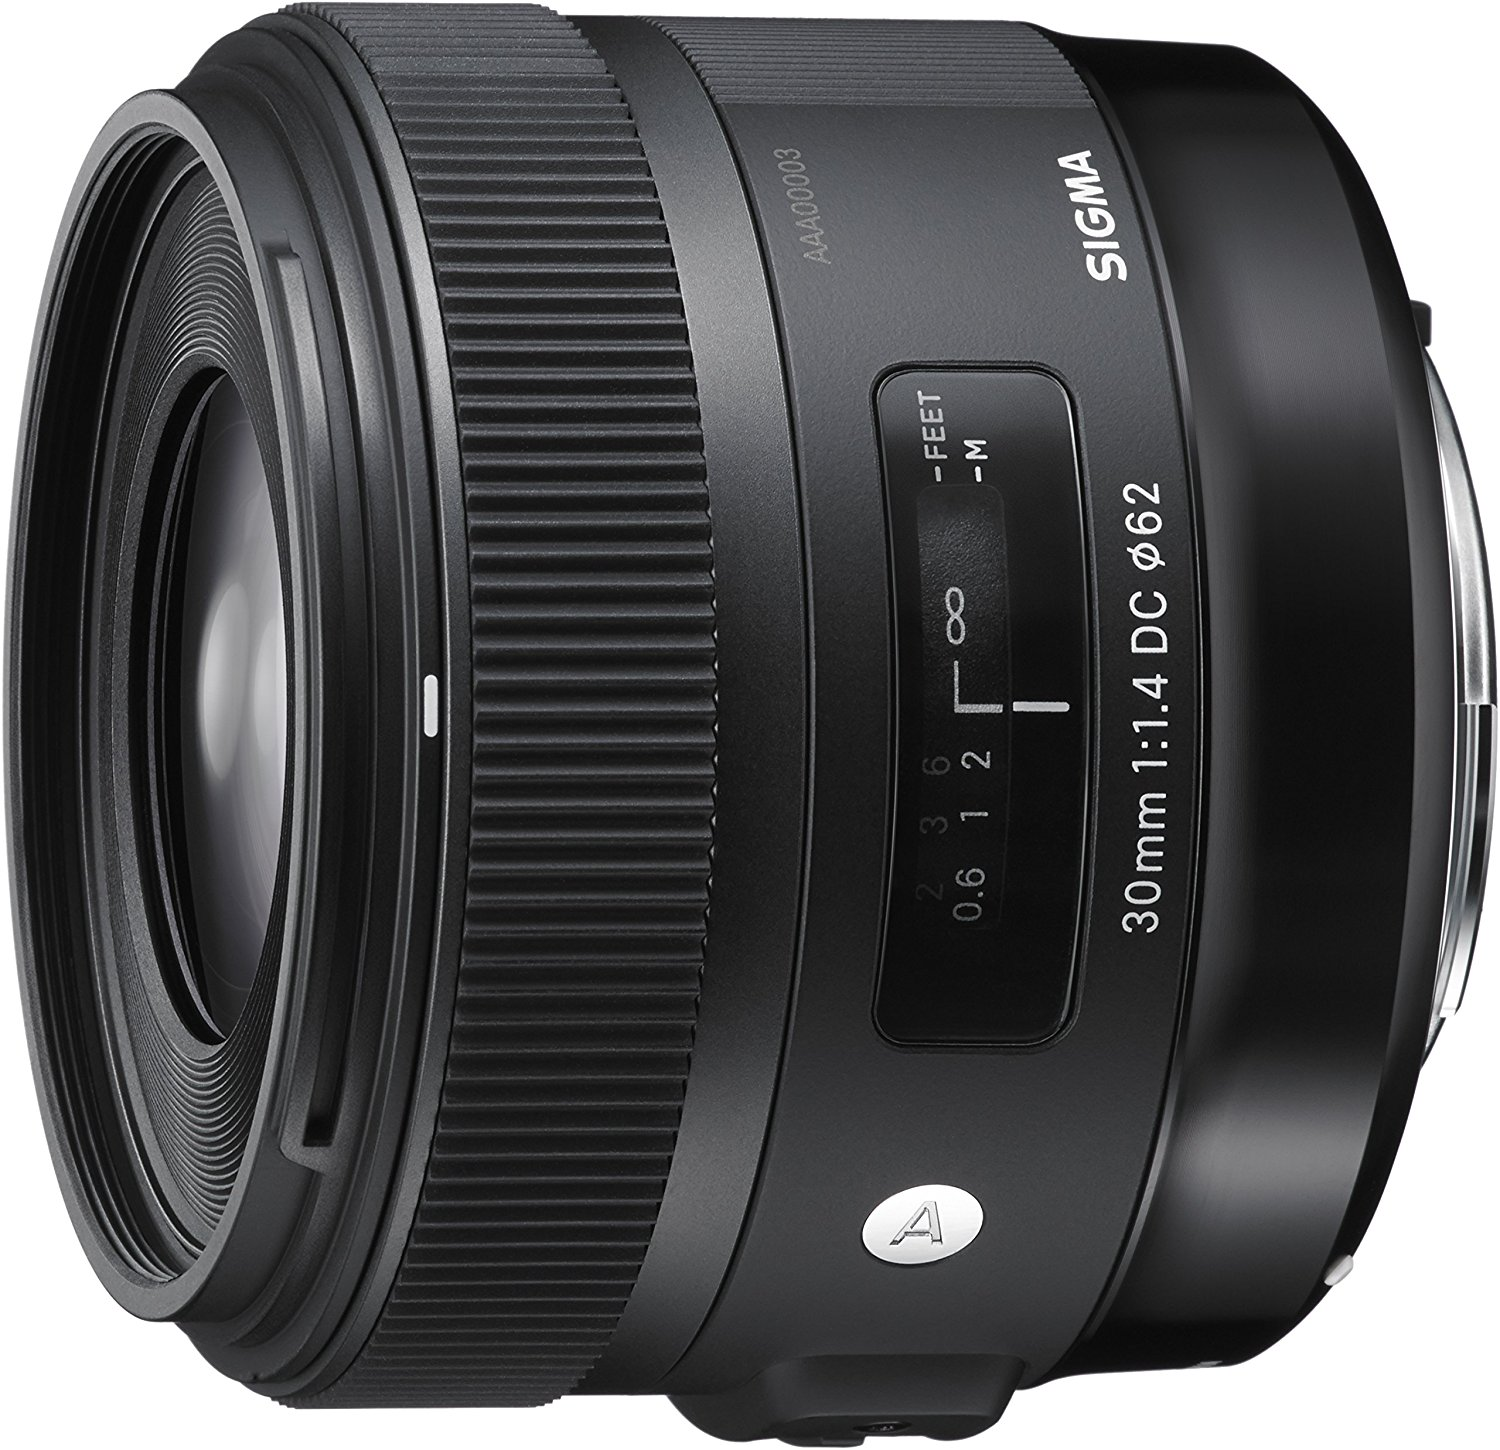 Sigma 30mm F1.4 Art DC - Lens for Street Photography